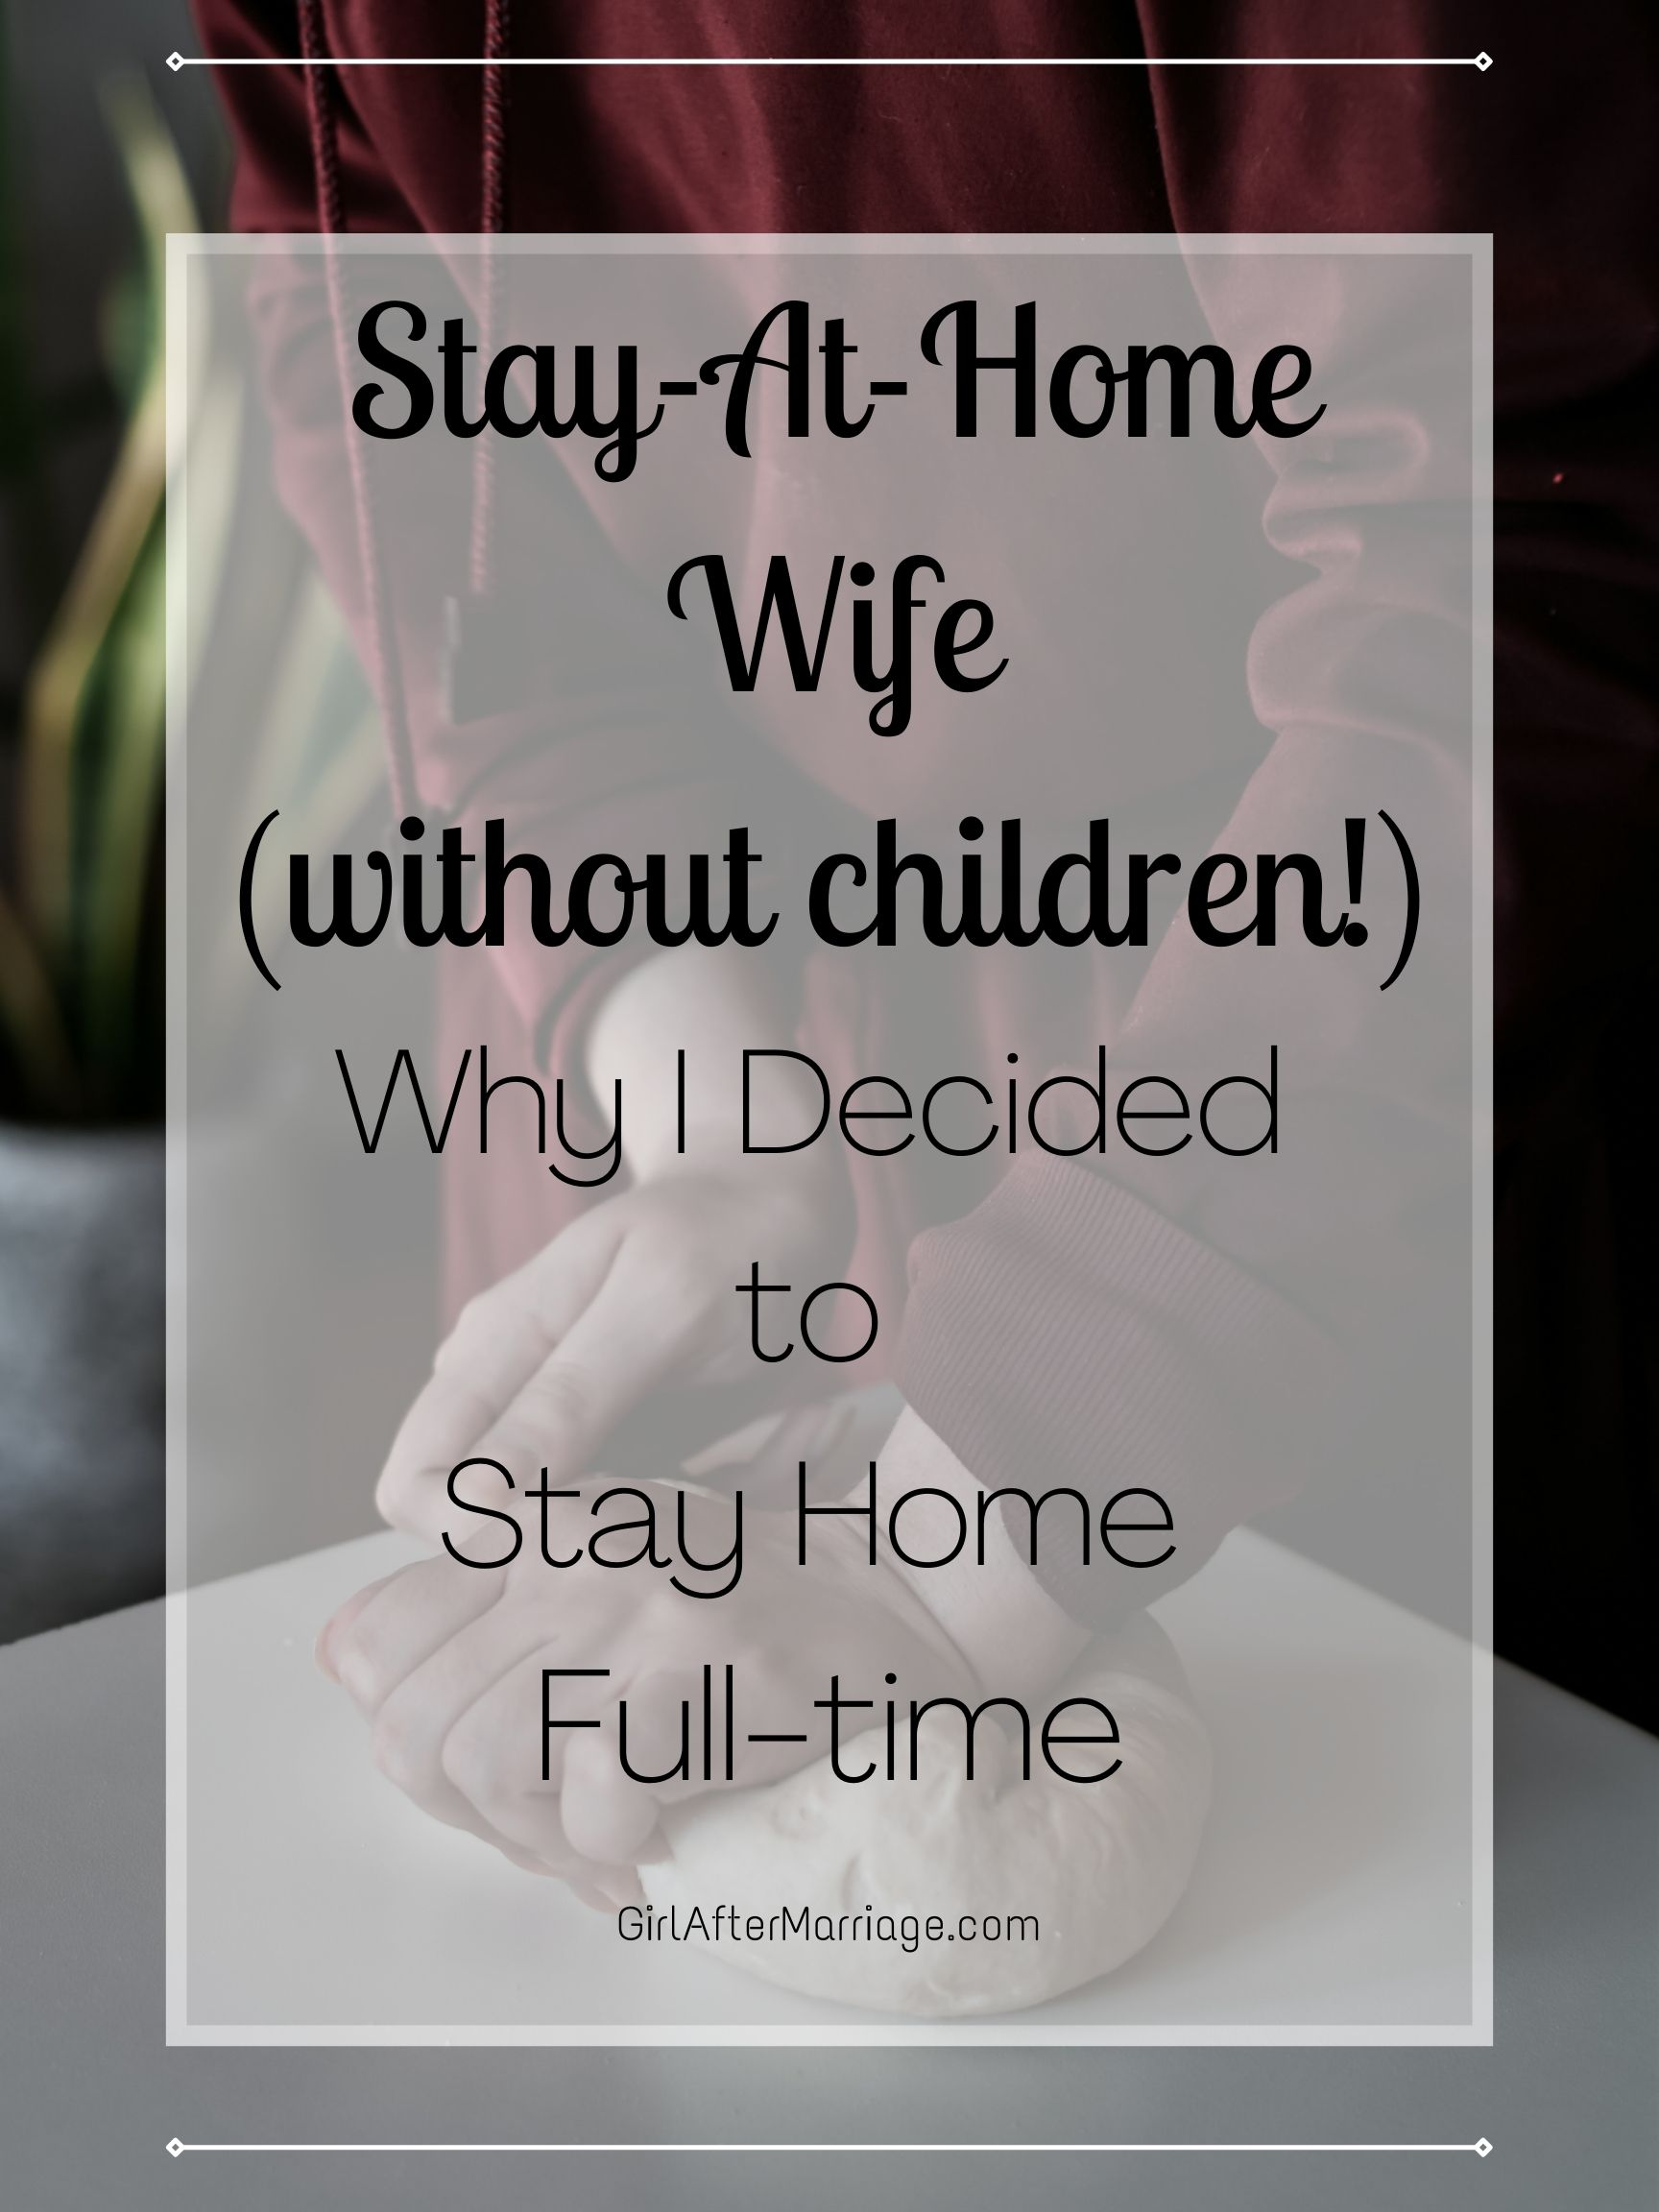 https://girlaftermarriage.com/stay-at-home-wife/ 